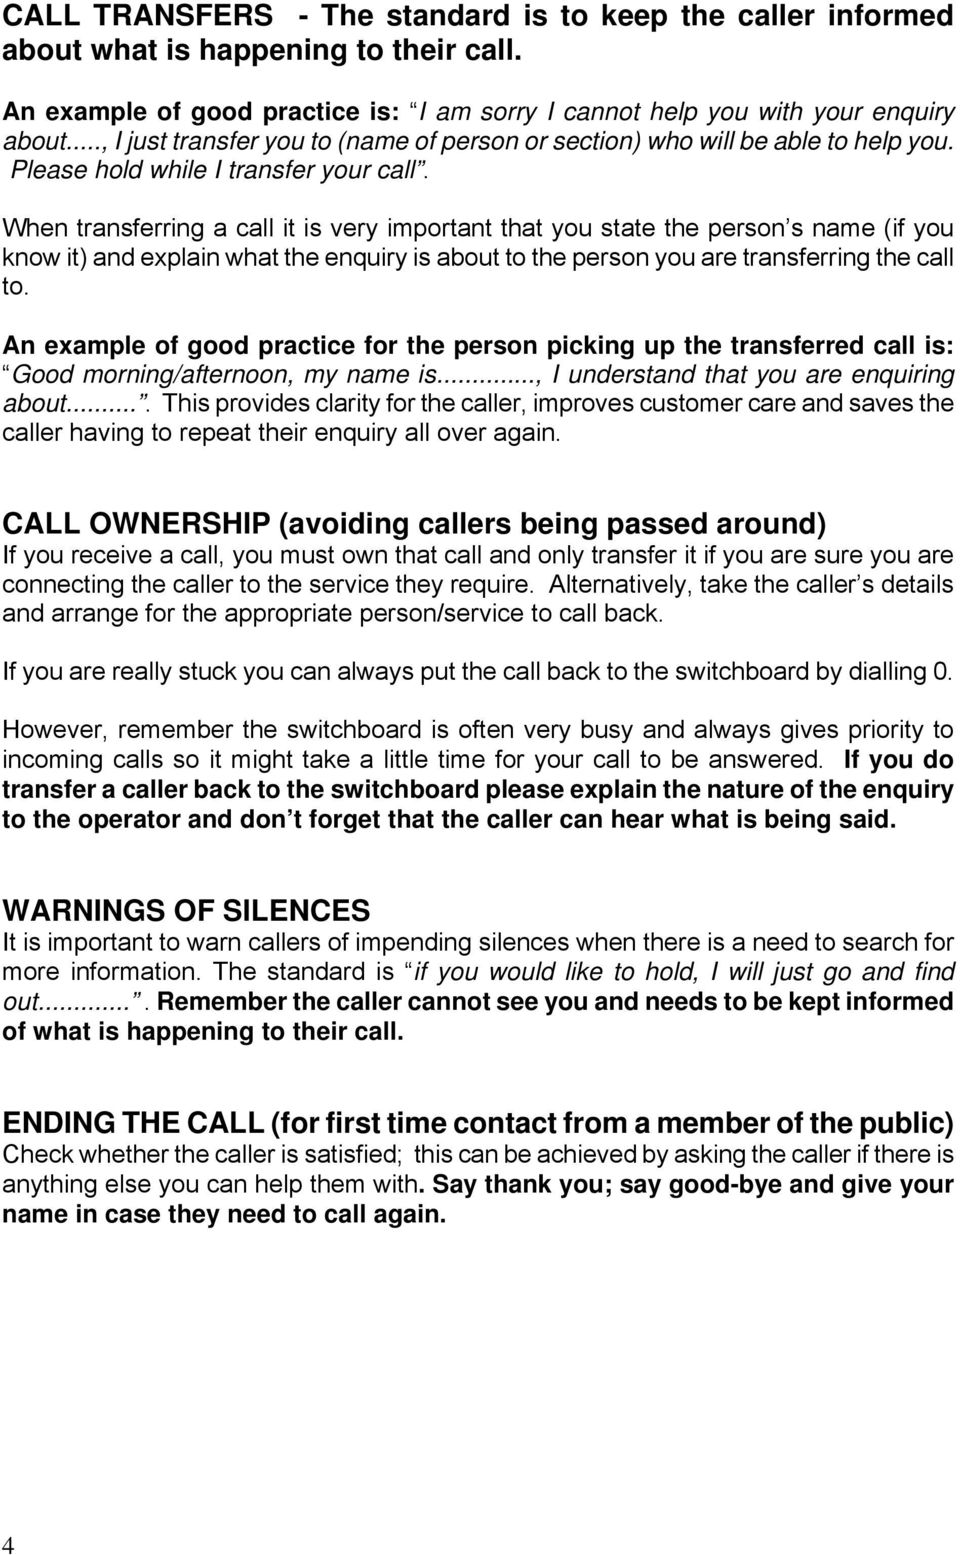 When transferring a call it is very important that you state the person s name (if you know it) and explain what the enquiry is about to the person you are transferring the call to.